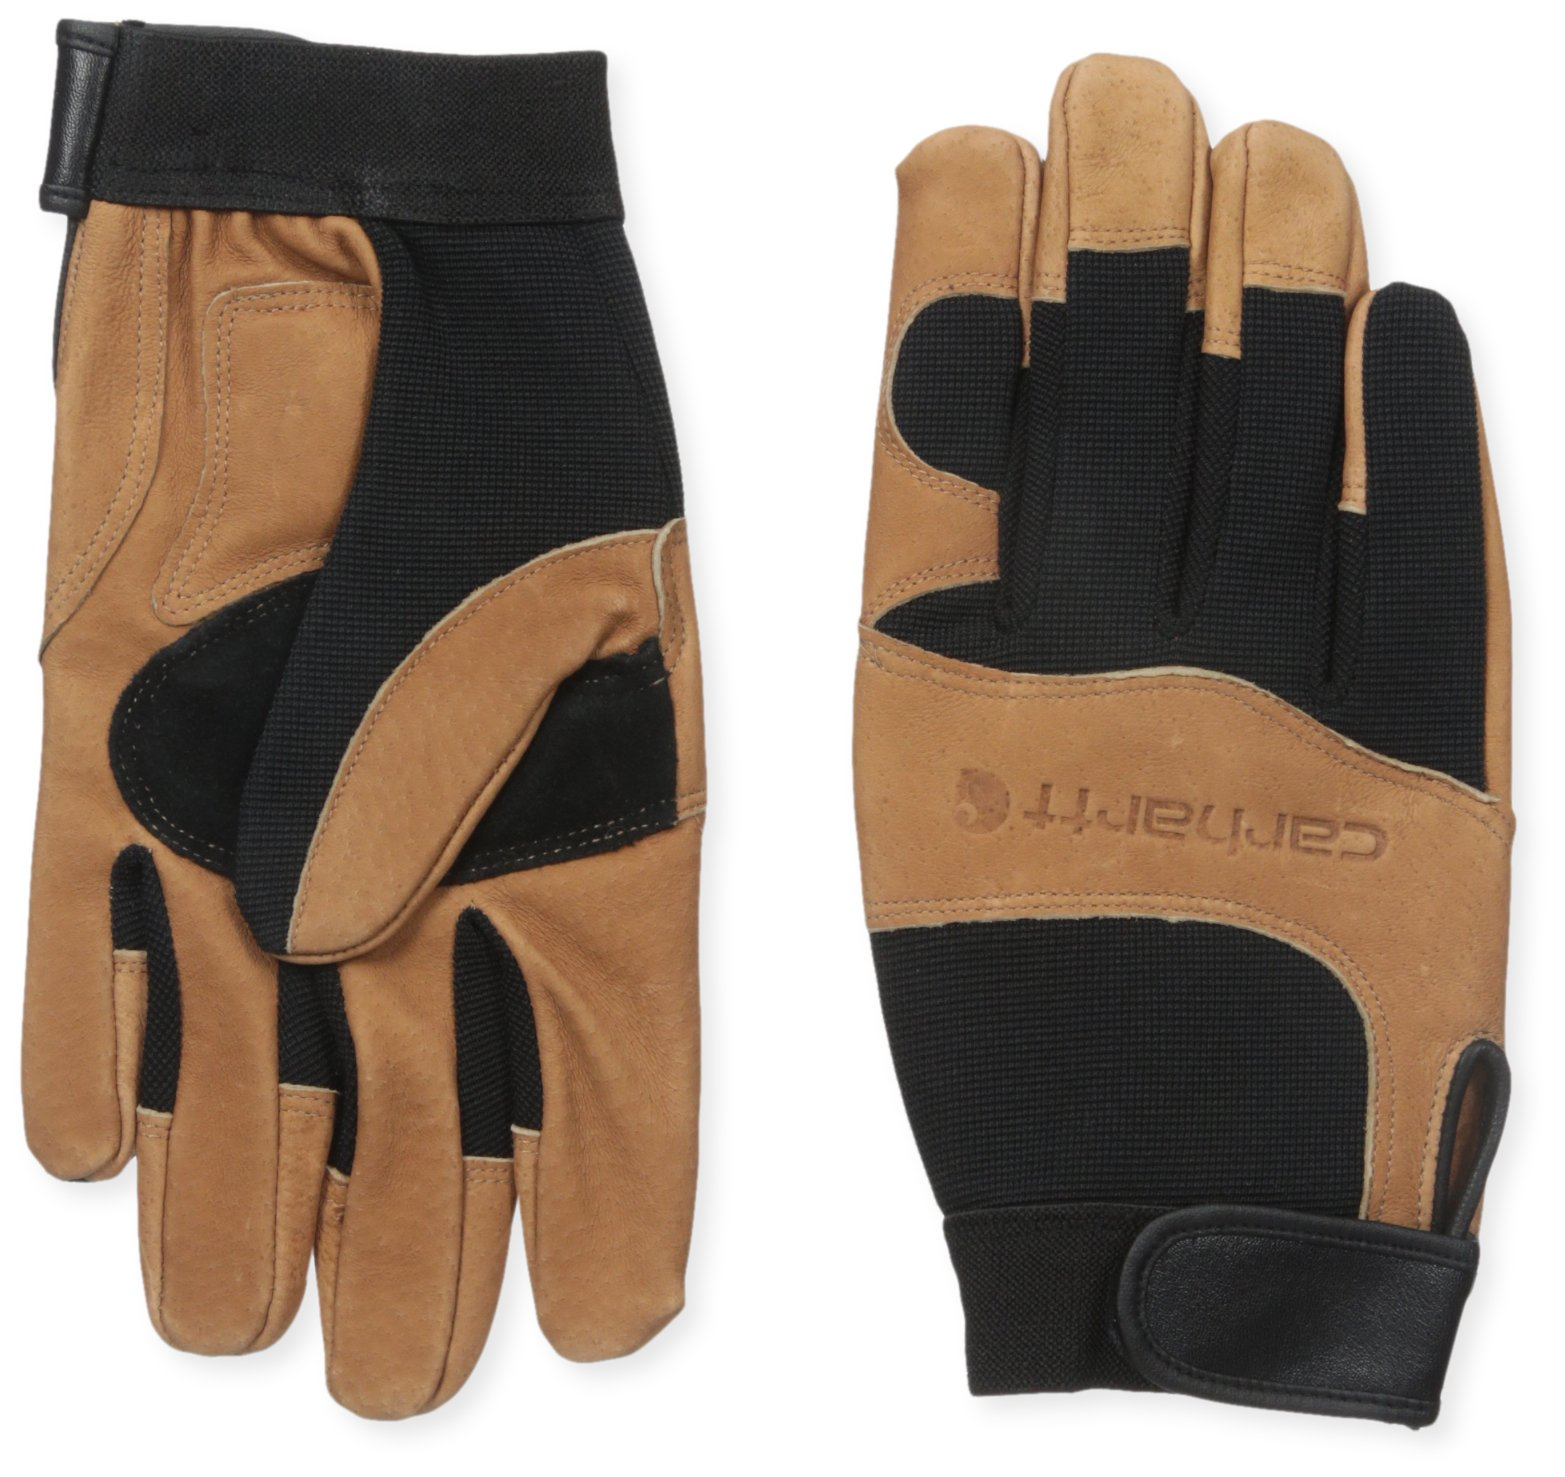 Carhartt Men's The Dex Ii Glove, Black/Barley, Large